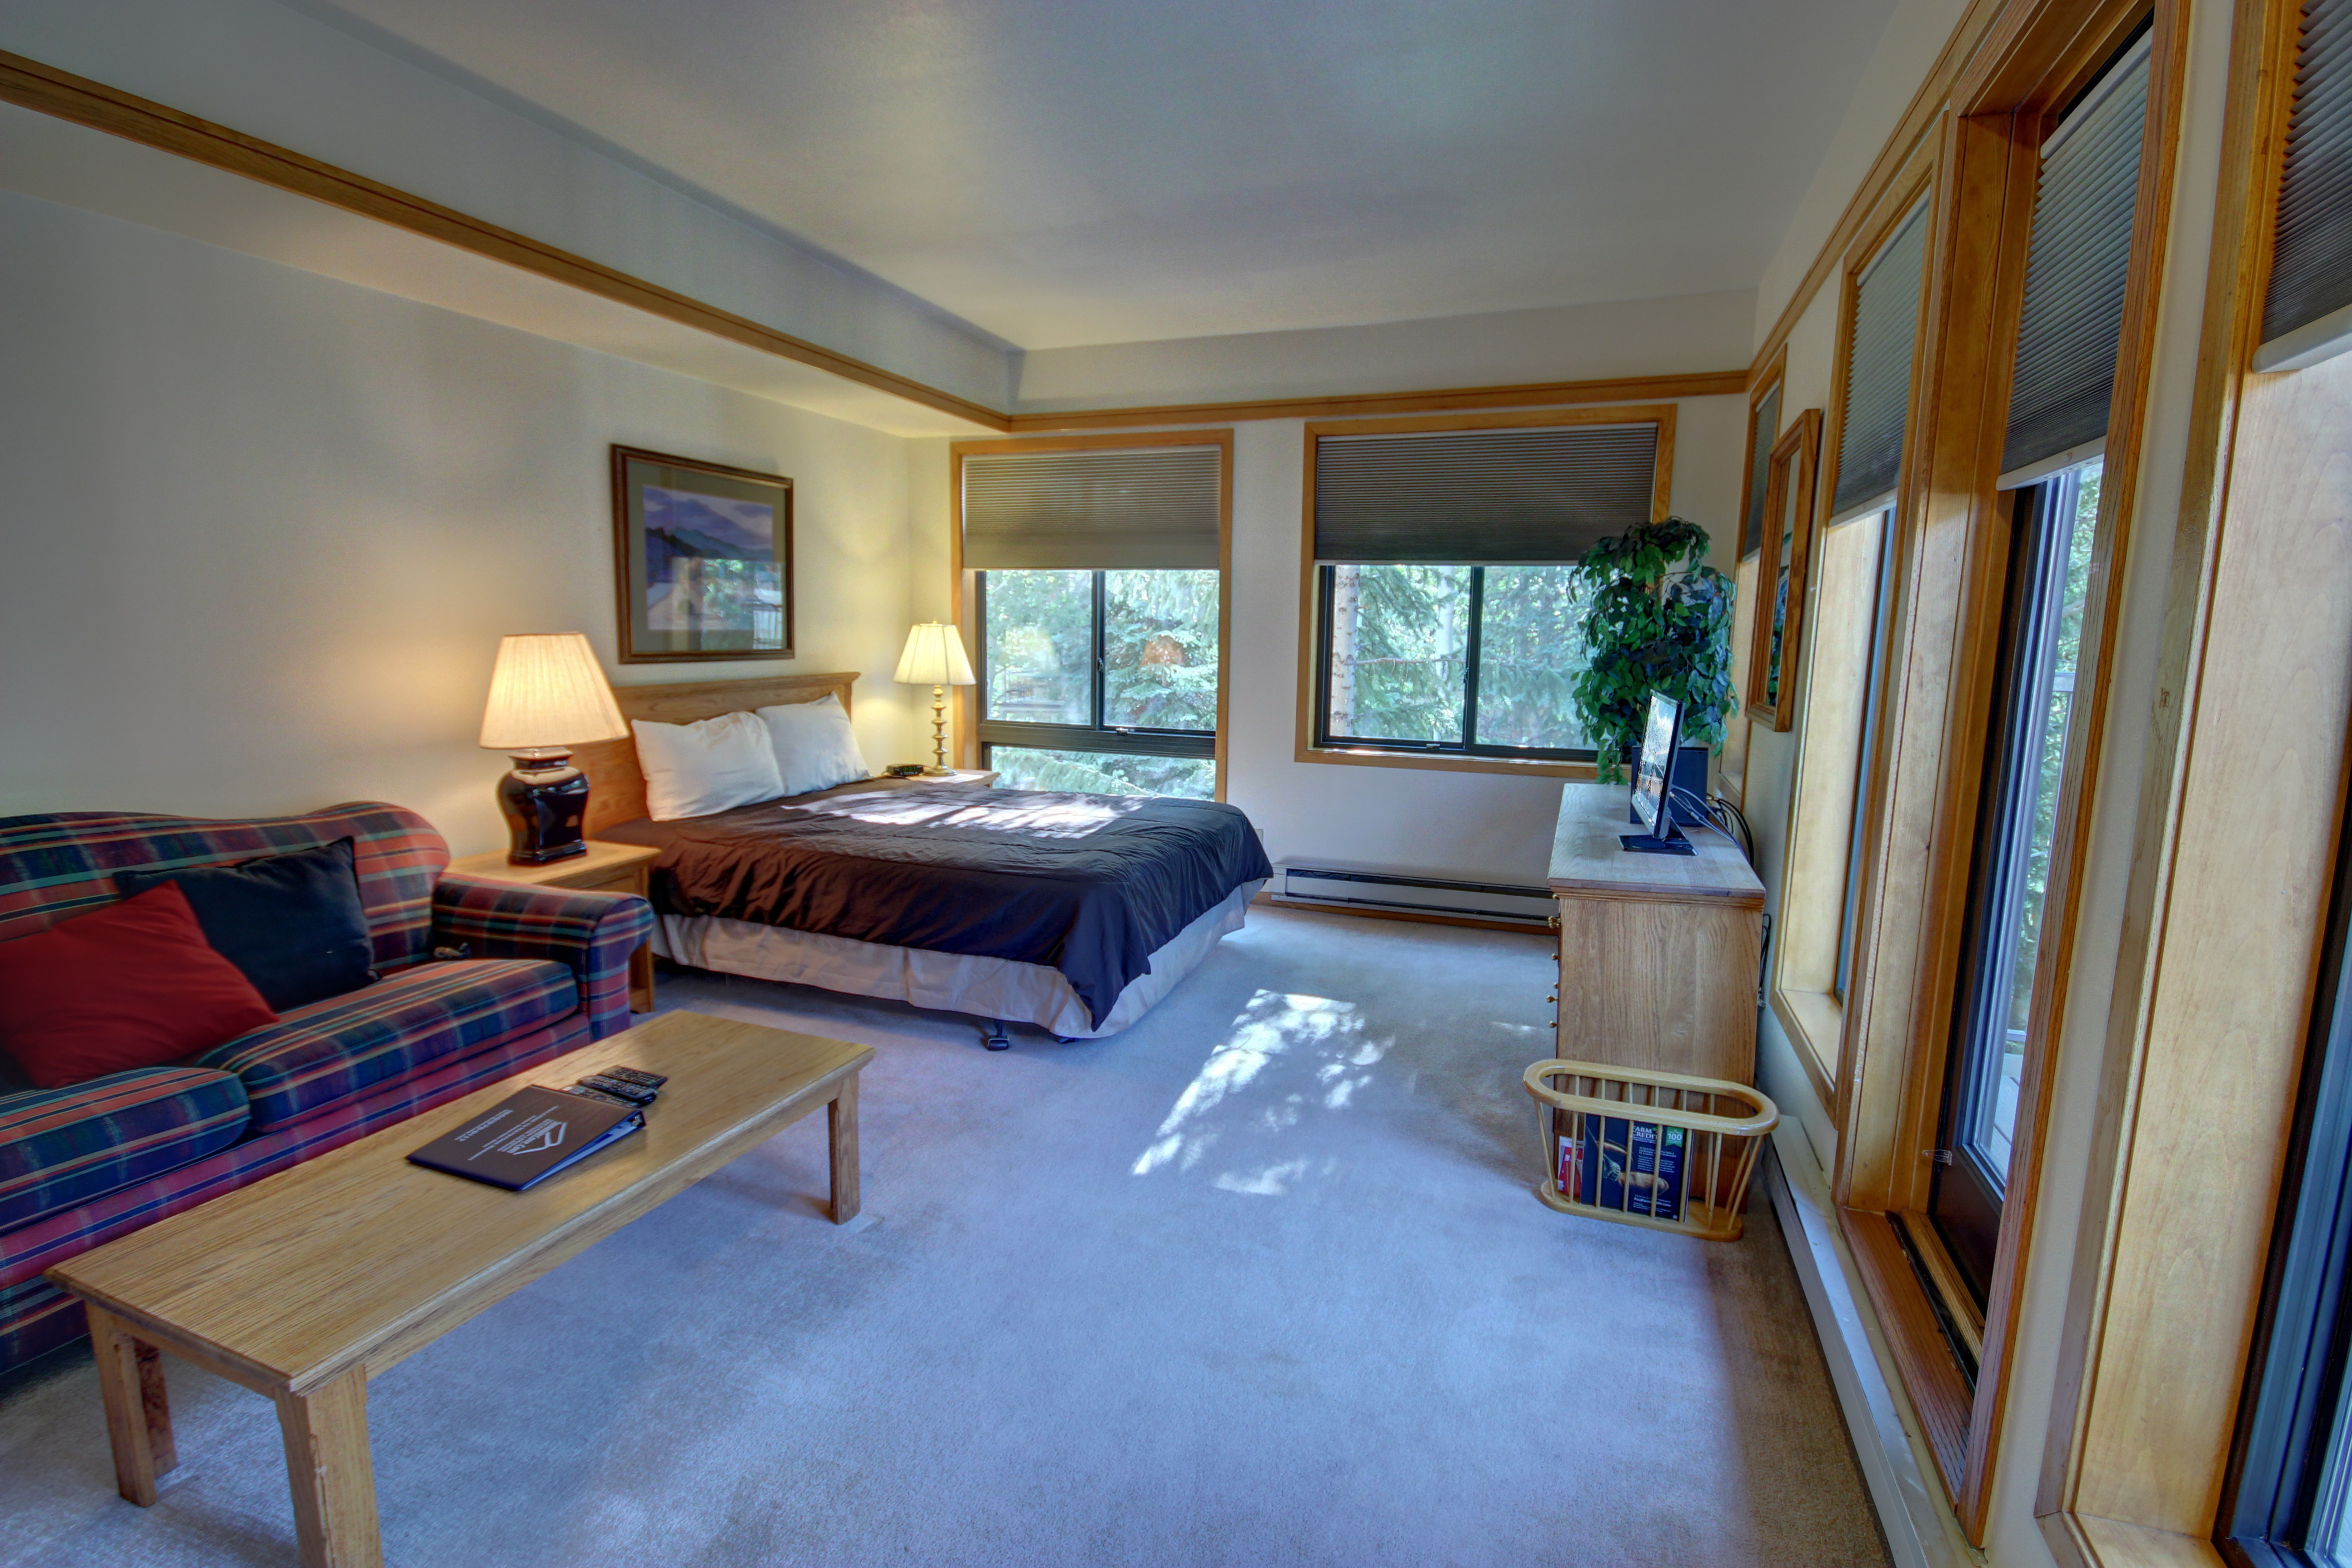 Bedroom and living room with lots of natural light